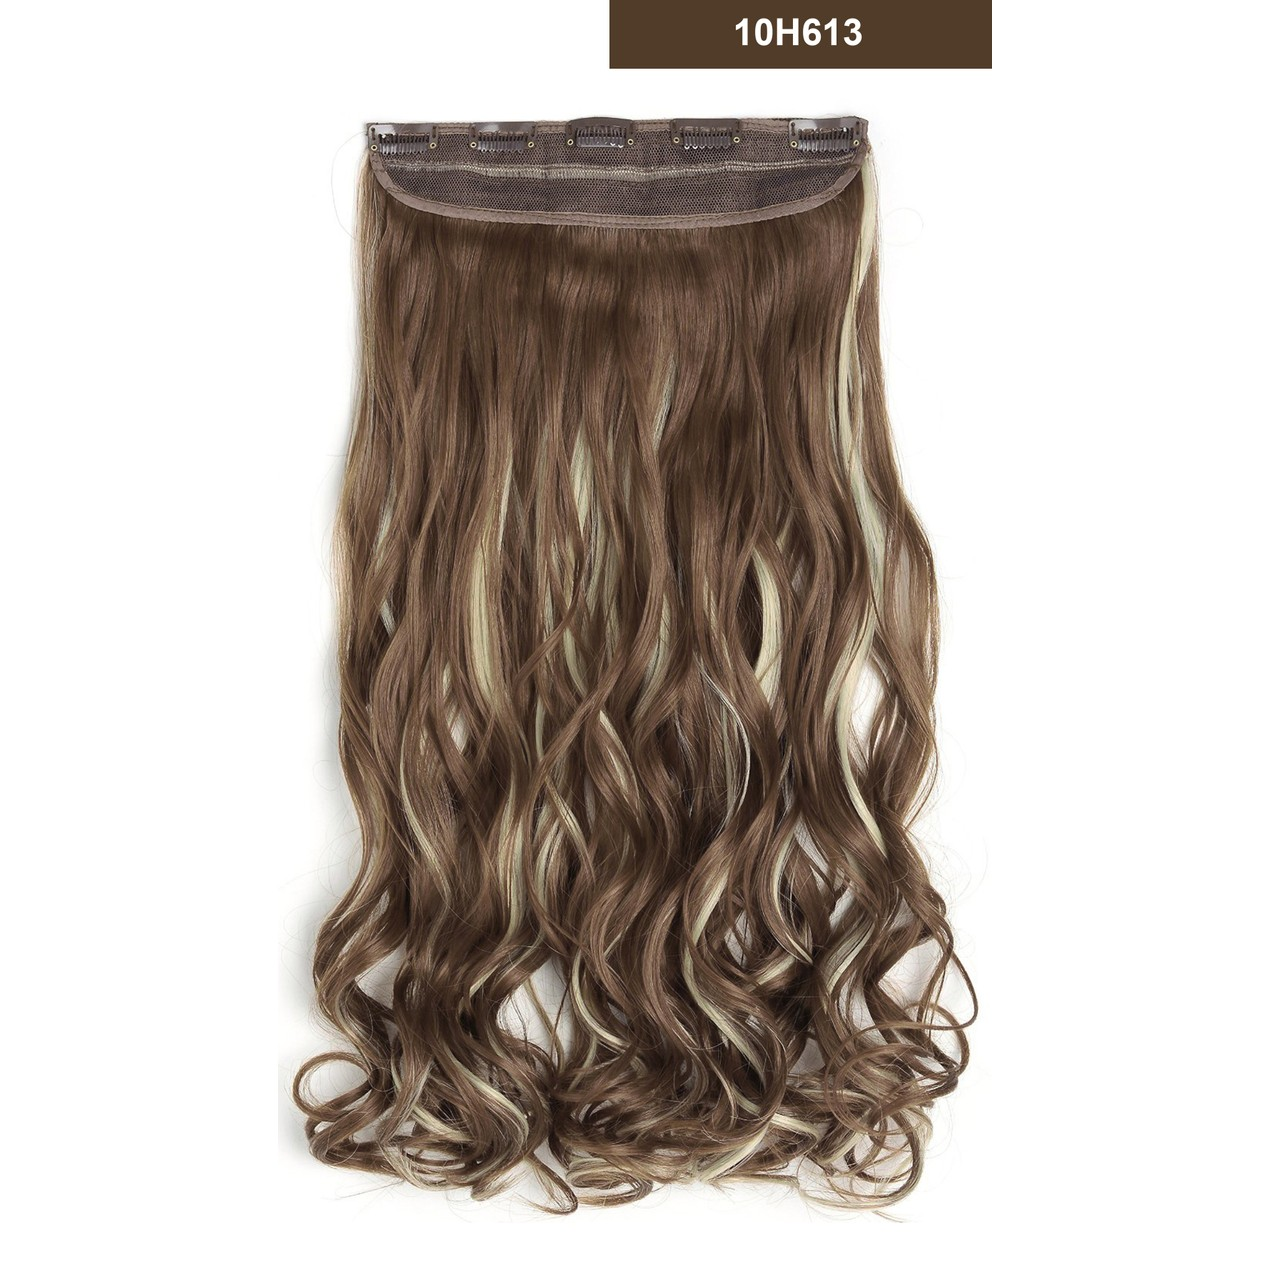 20 Curly 34 Full Head One Piece Synthetic Hair Extensions Tanga